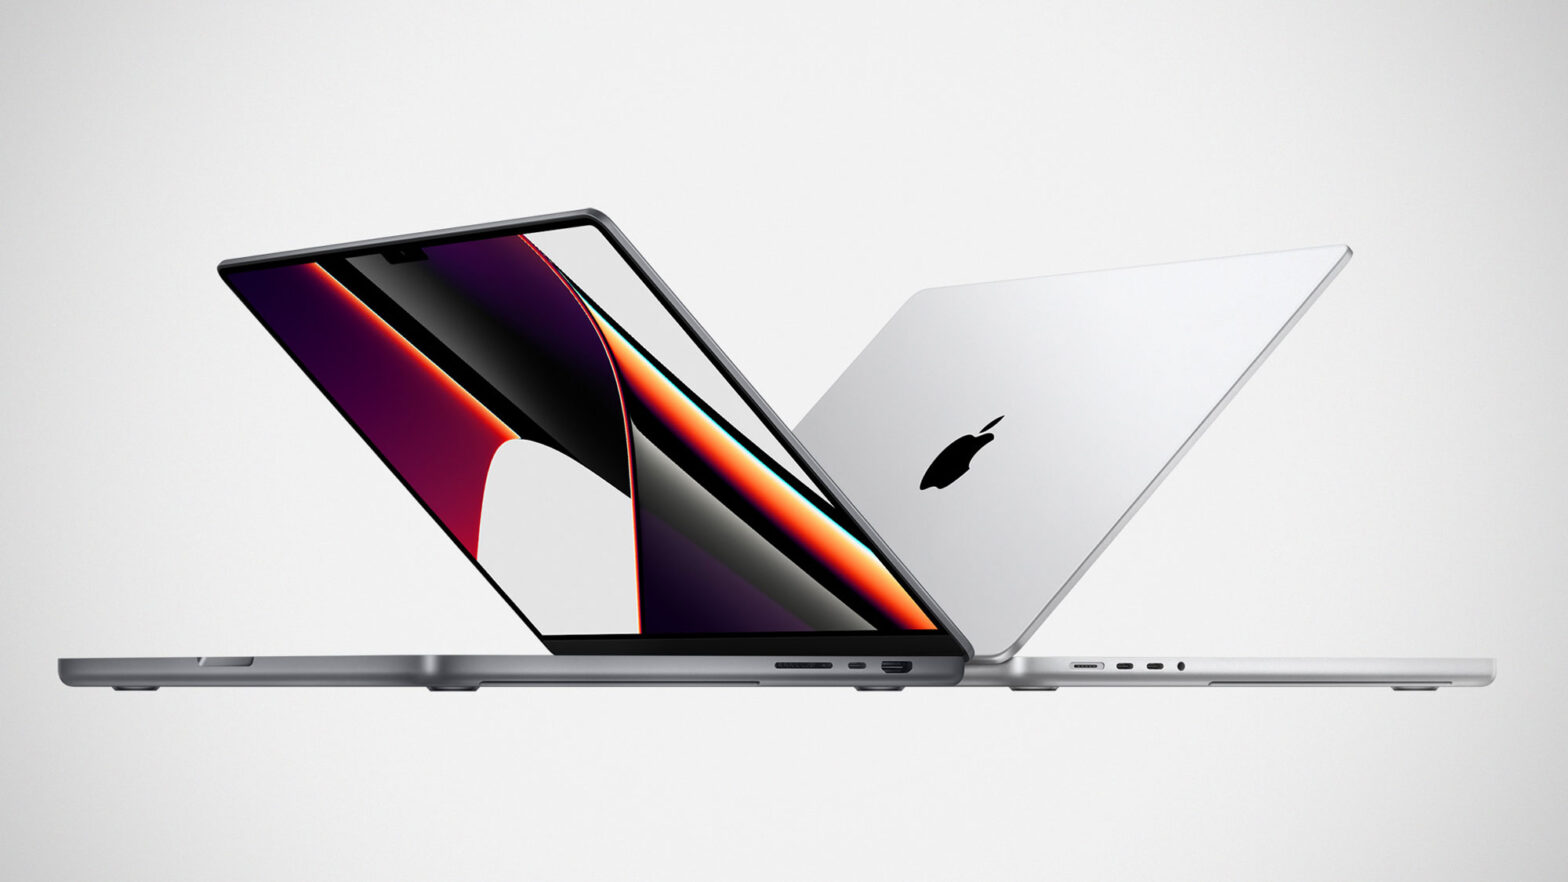 2021 MacBook Pro with M1 Pro and M1 Max Chip